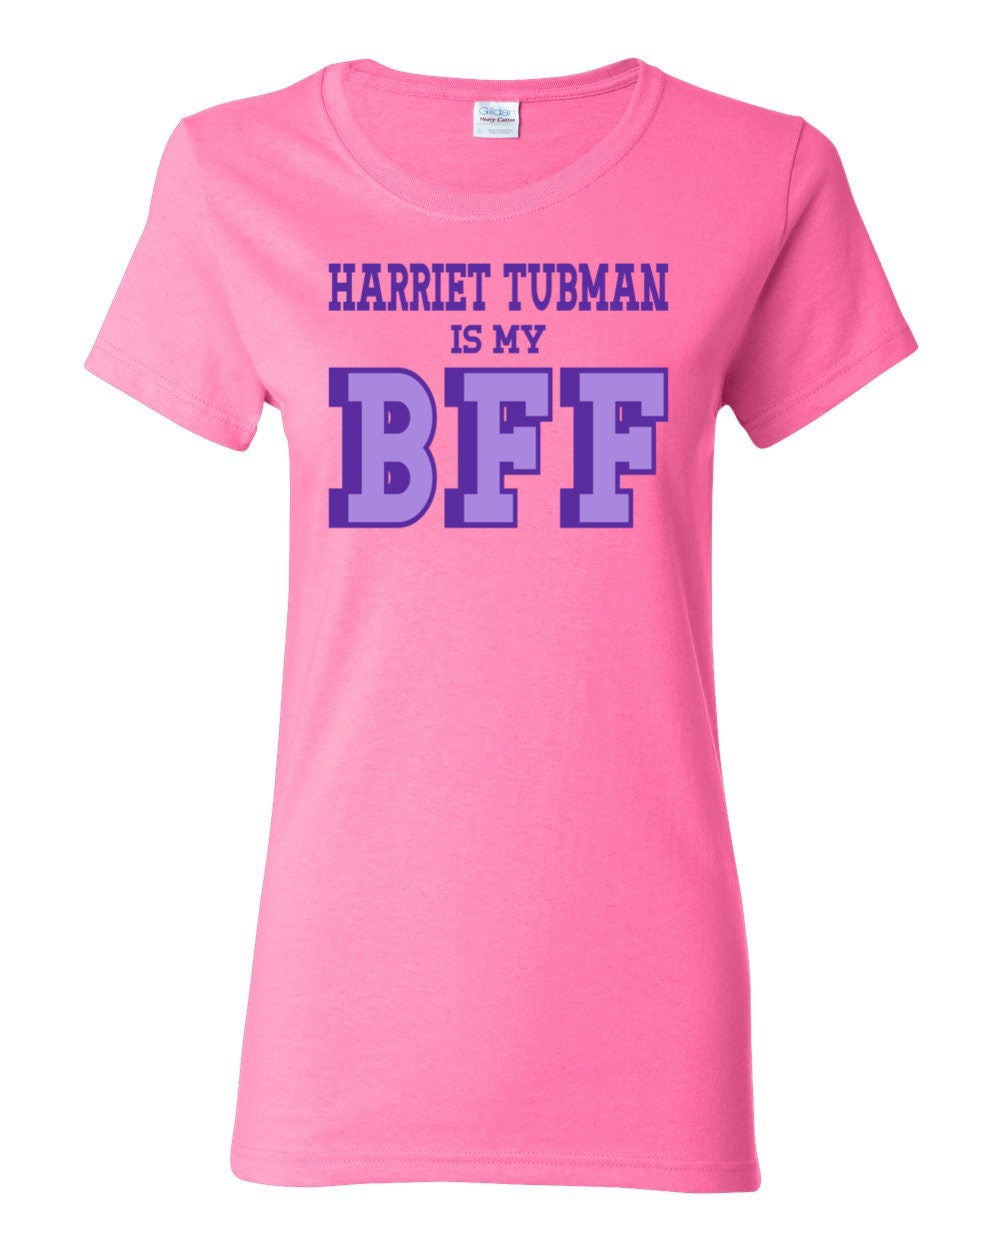 Great Women of History - Harriet Tubman is my BFF Womens History T-shirt